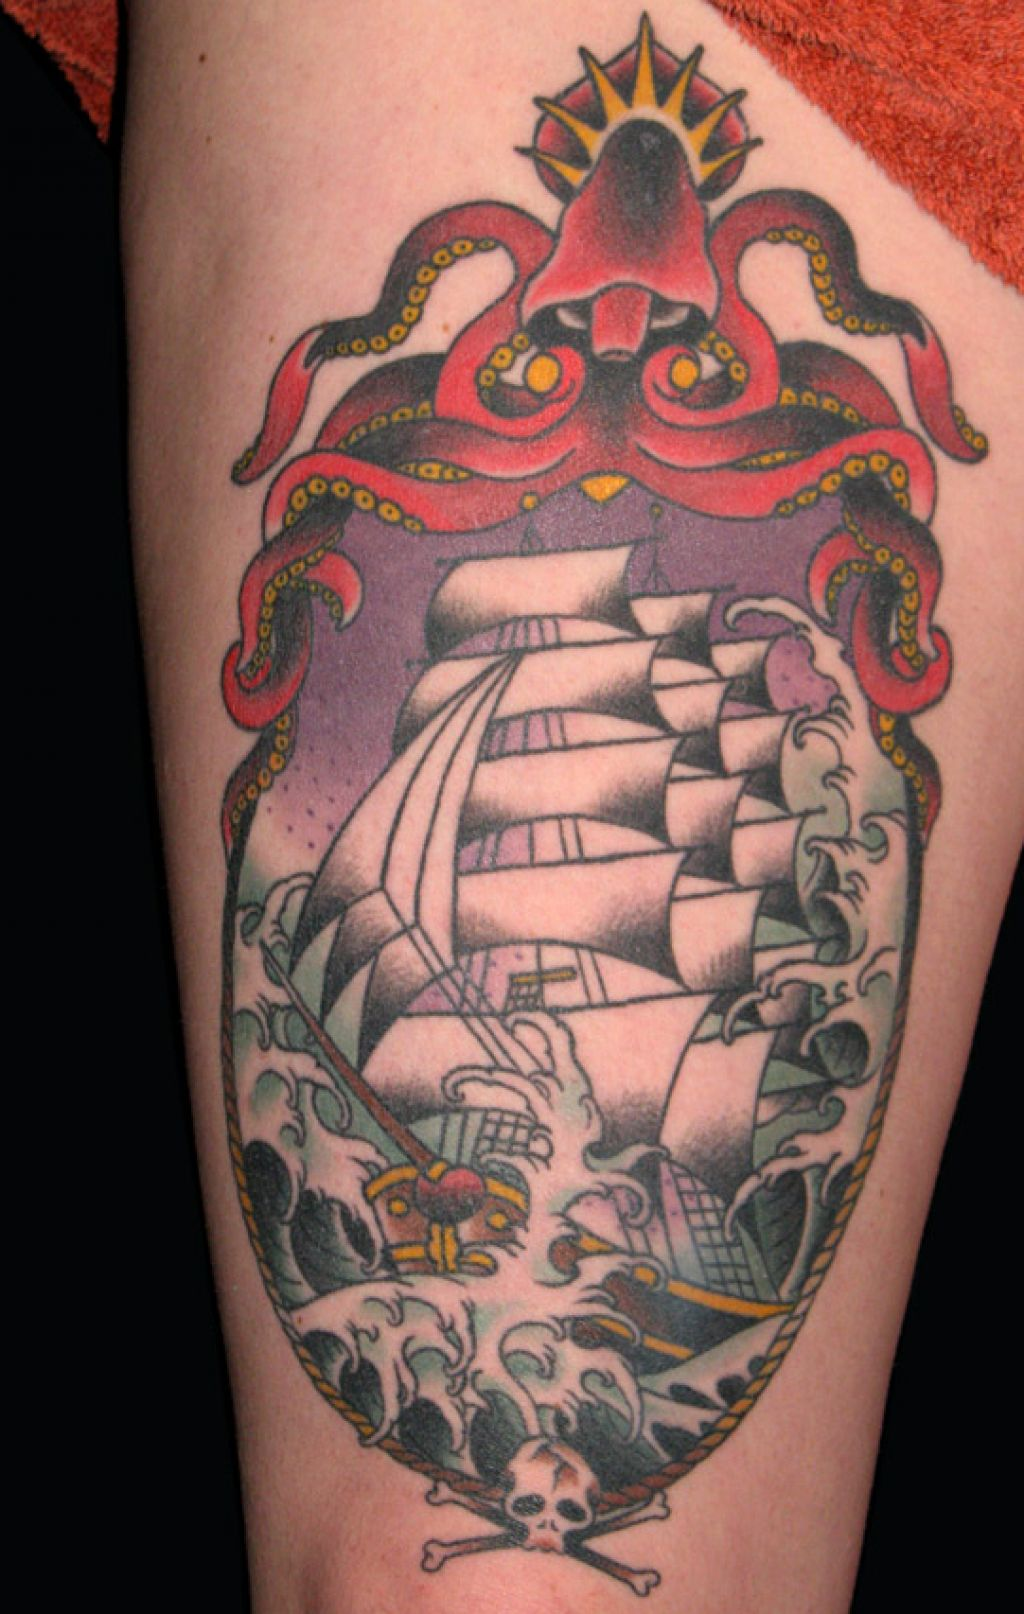 Big ship sailor jerry tattoo for Sailer jerry tattoo